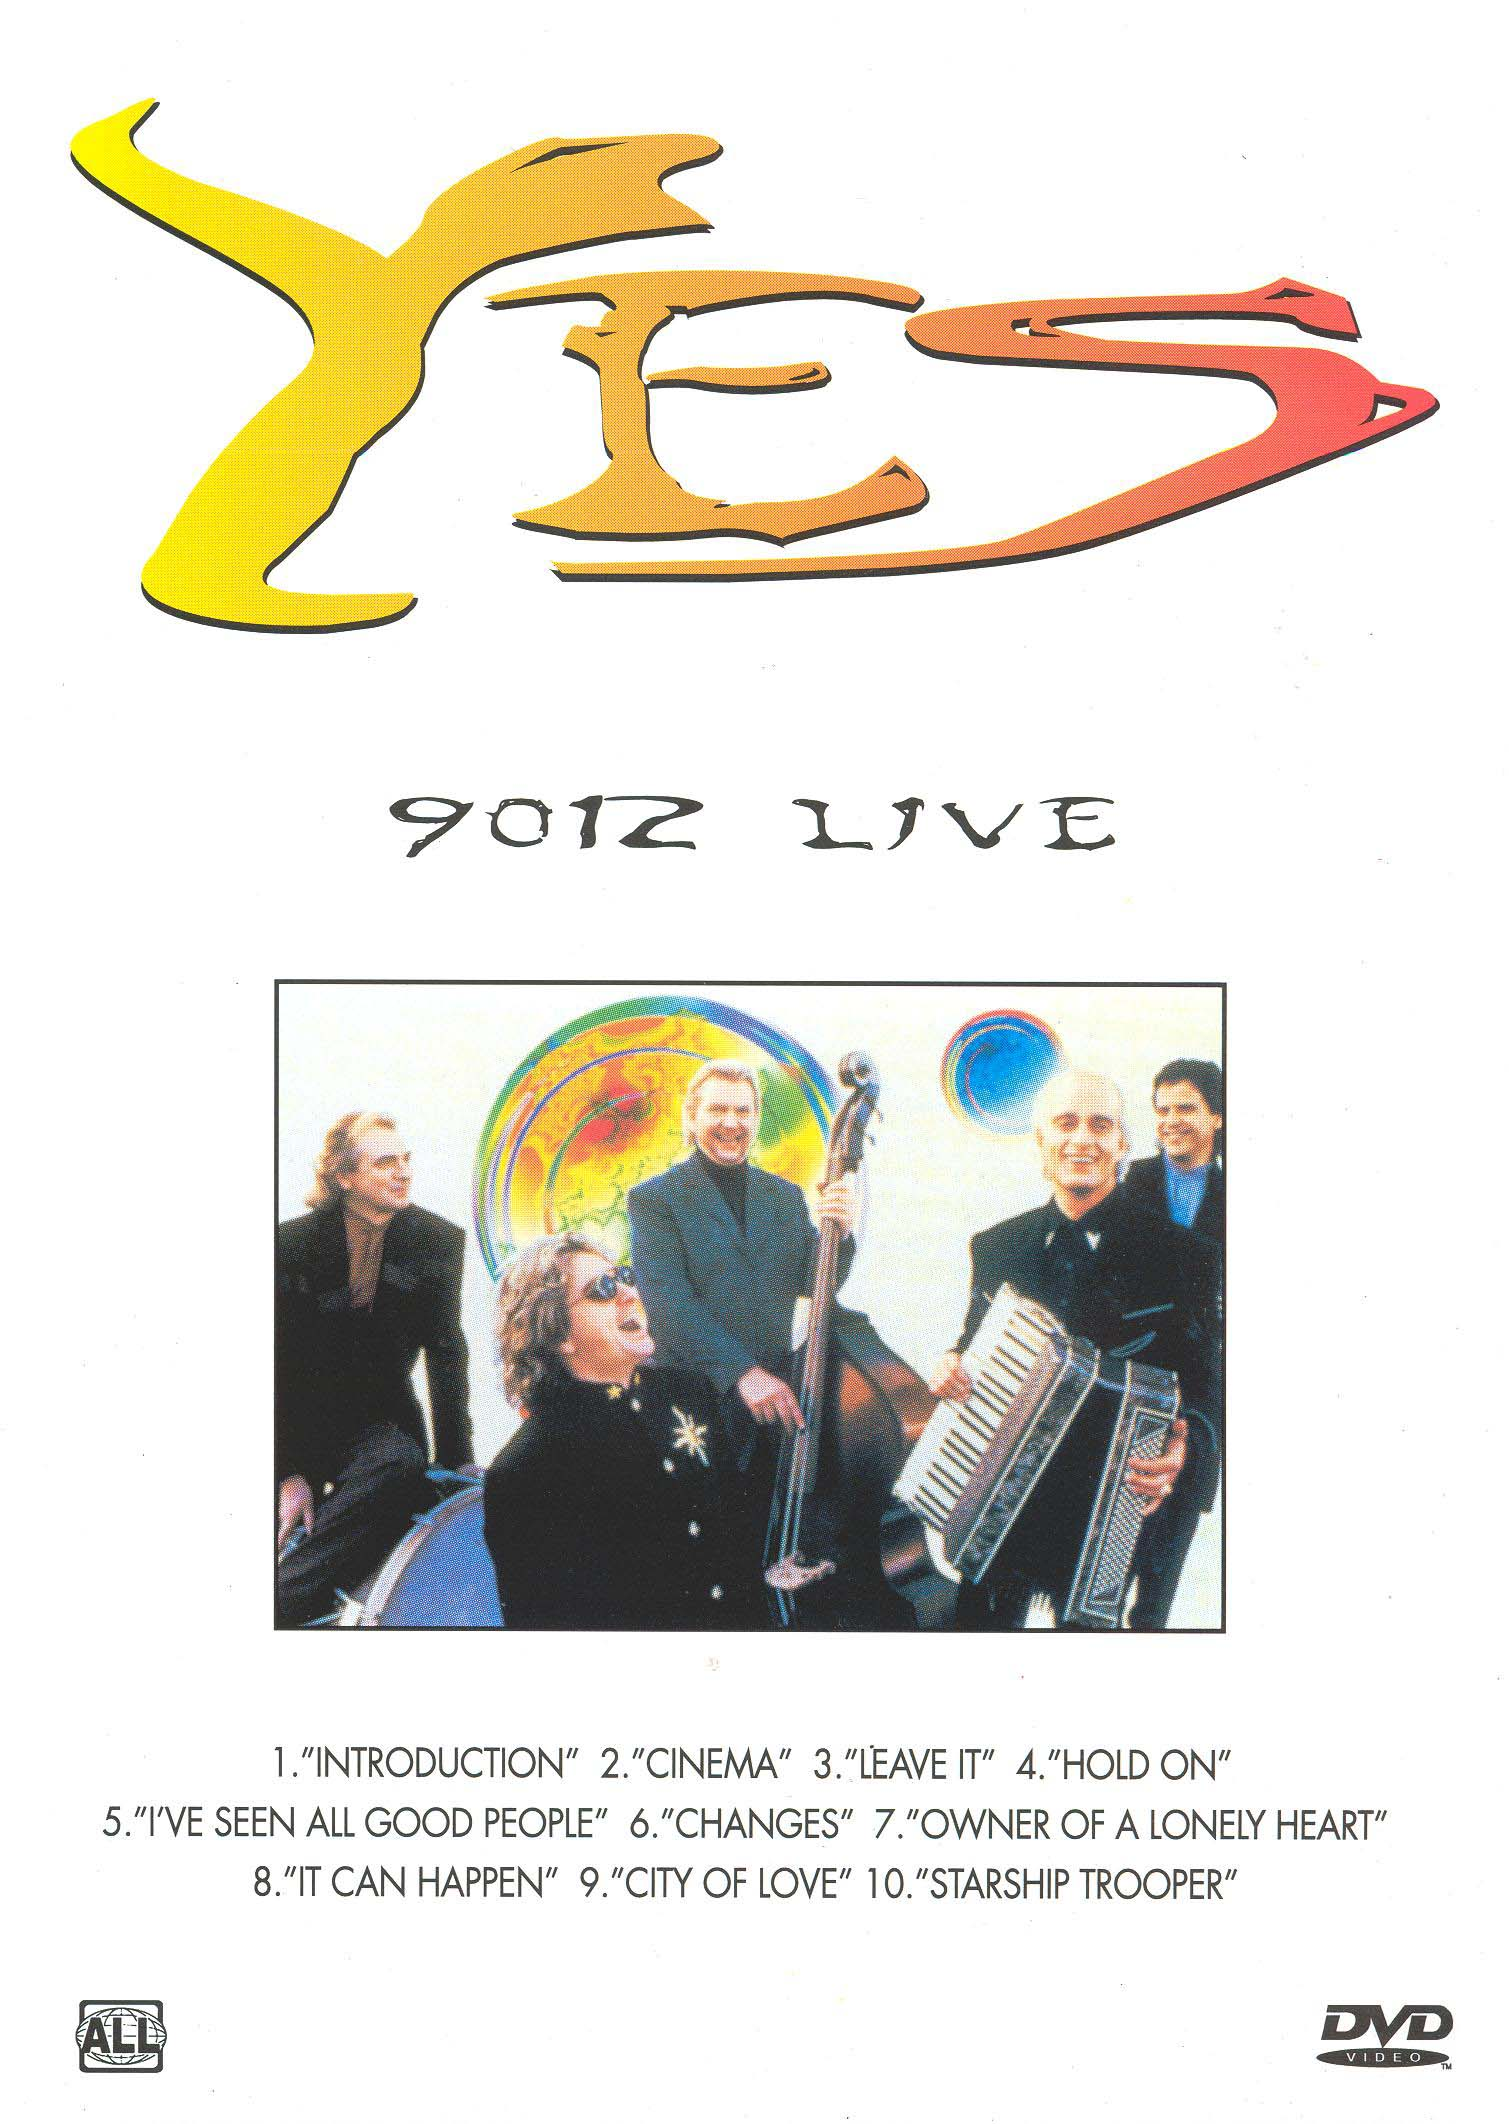 Yes: 9012 Live